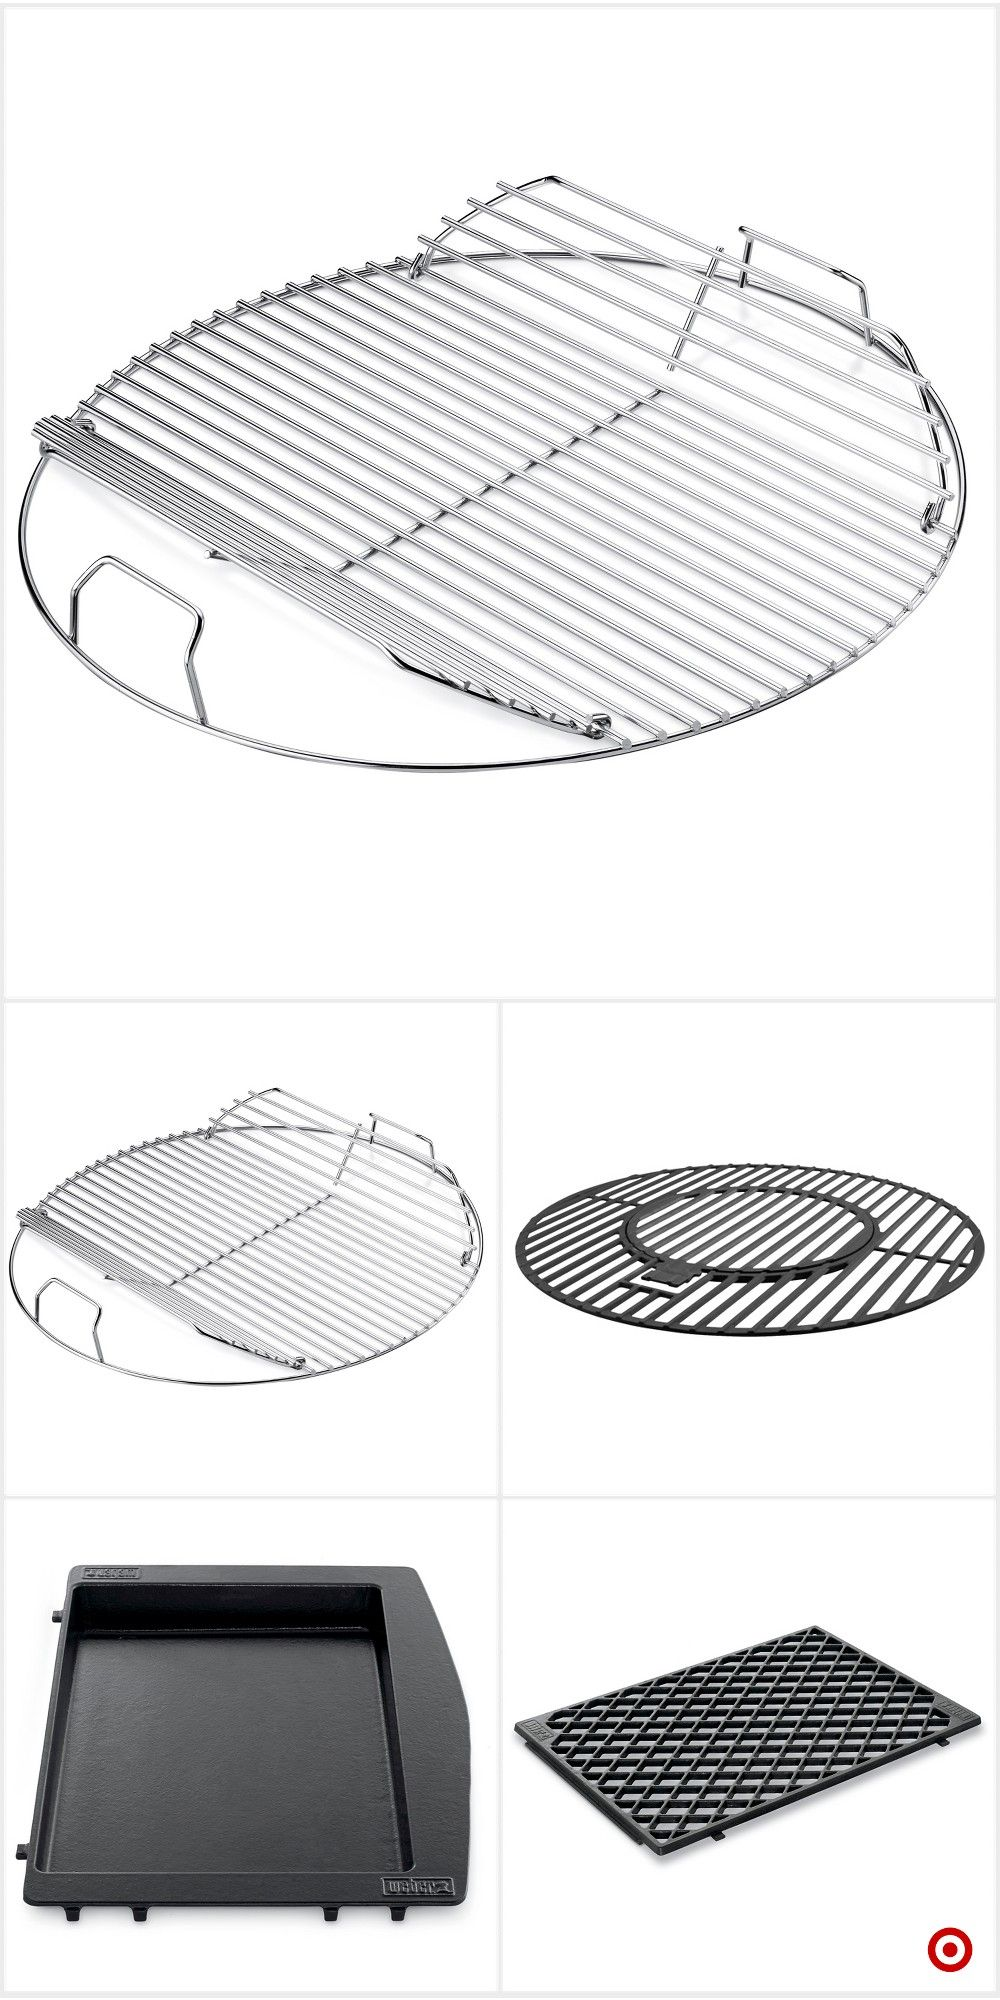 Luggage Rack Target Simple Shop Target For Grill Grate You Will Love At Great Low Pricesfree Design Ideas